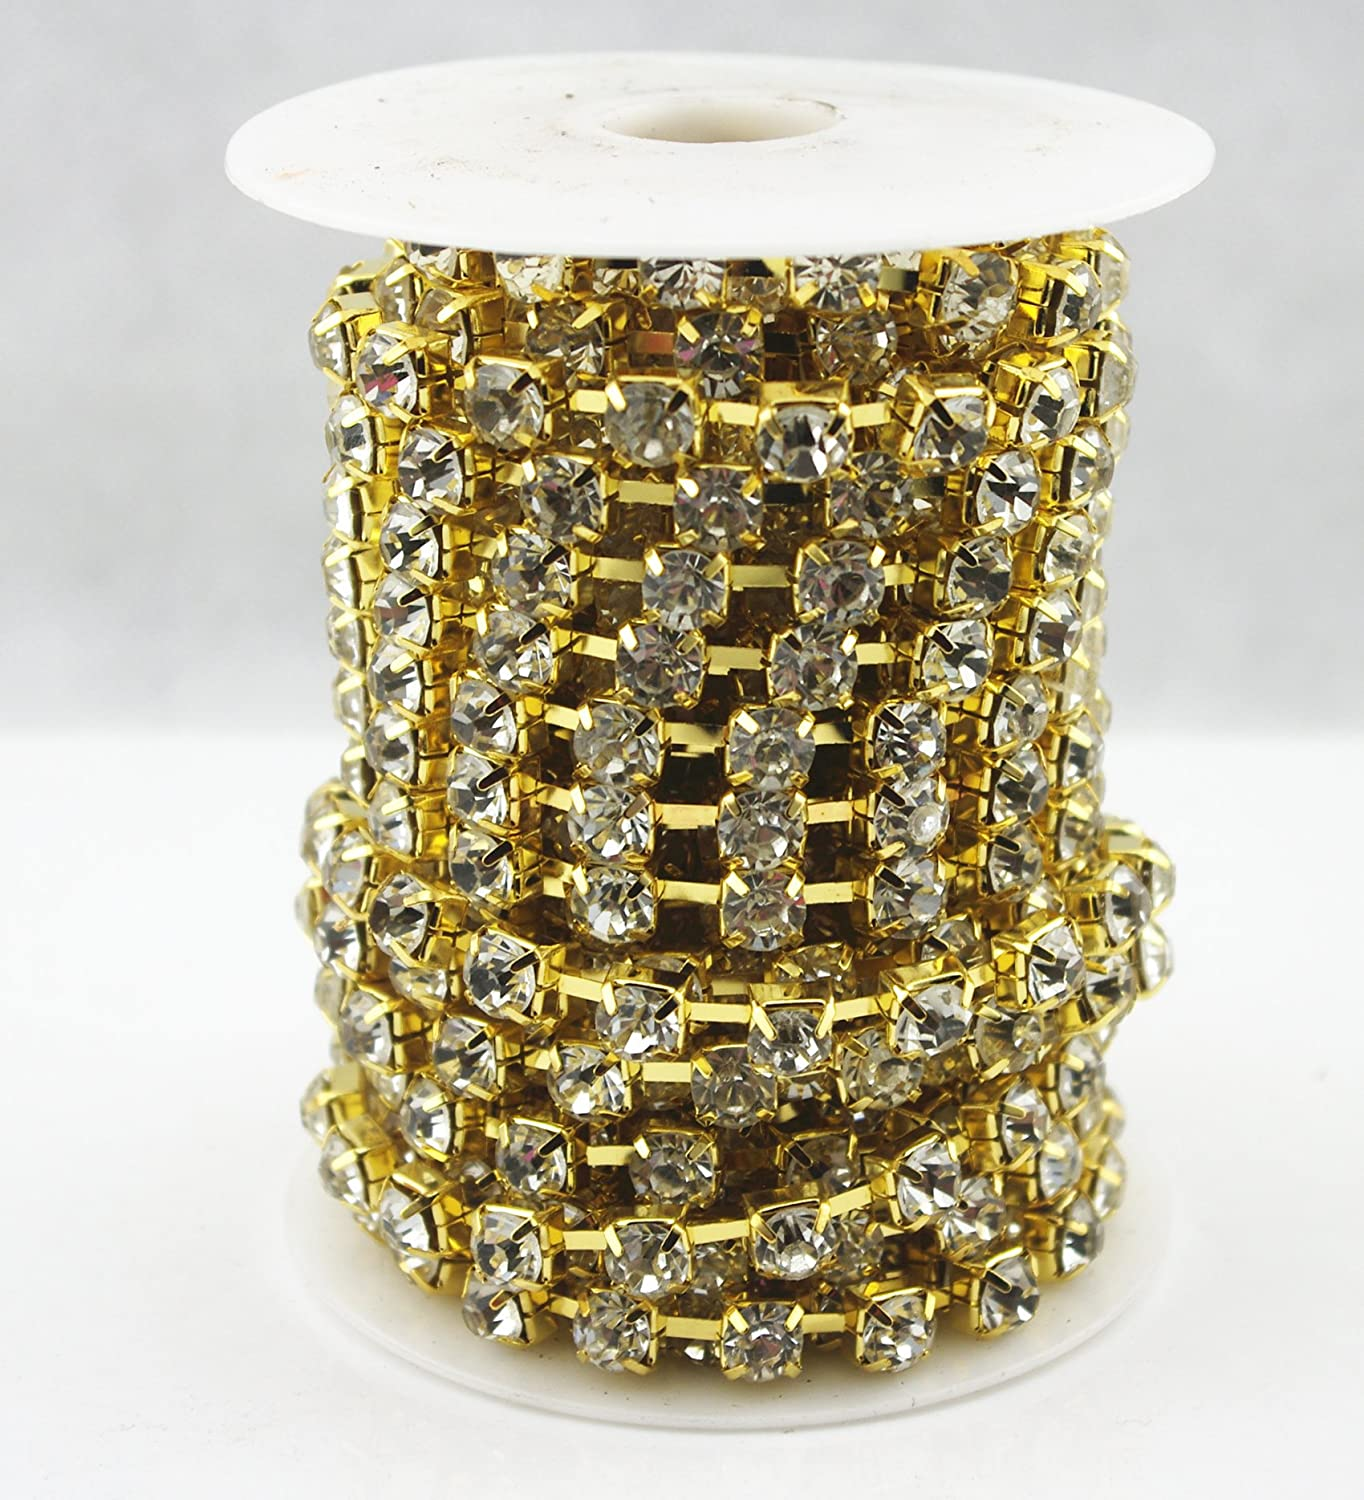 AEAOA 10 Yard Clear Crystal Rhinestone Chain Clear Trim Sewing Craft Cup Chain Party Decoration 4mm, Gold